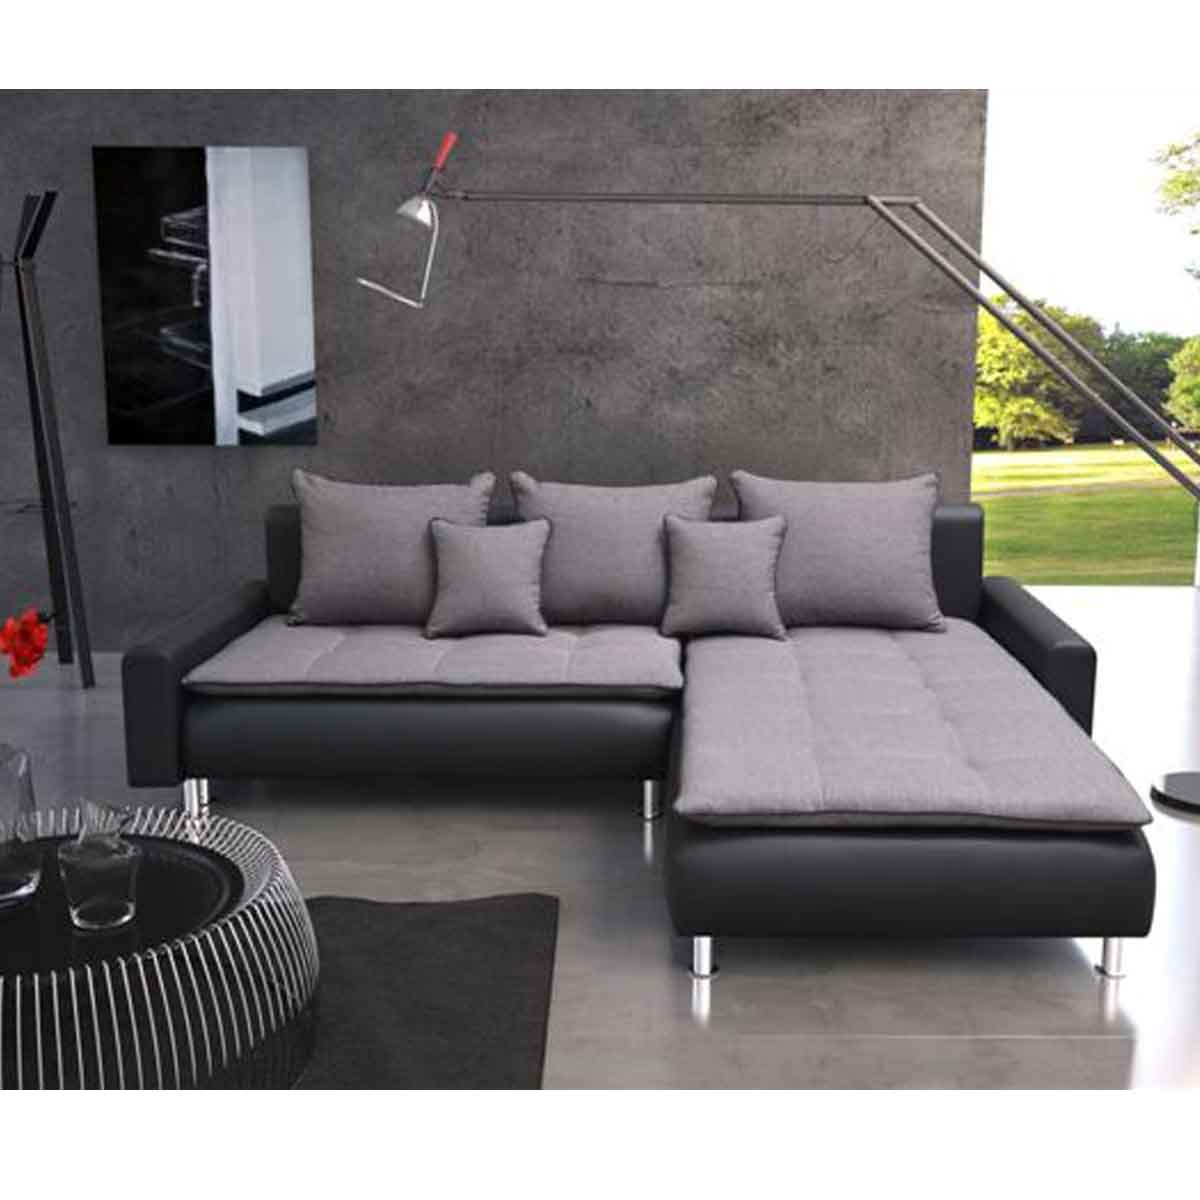 Canap convertible angle royal sofa id e de canap et for Meuble de canape